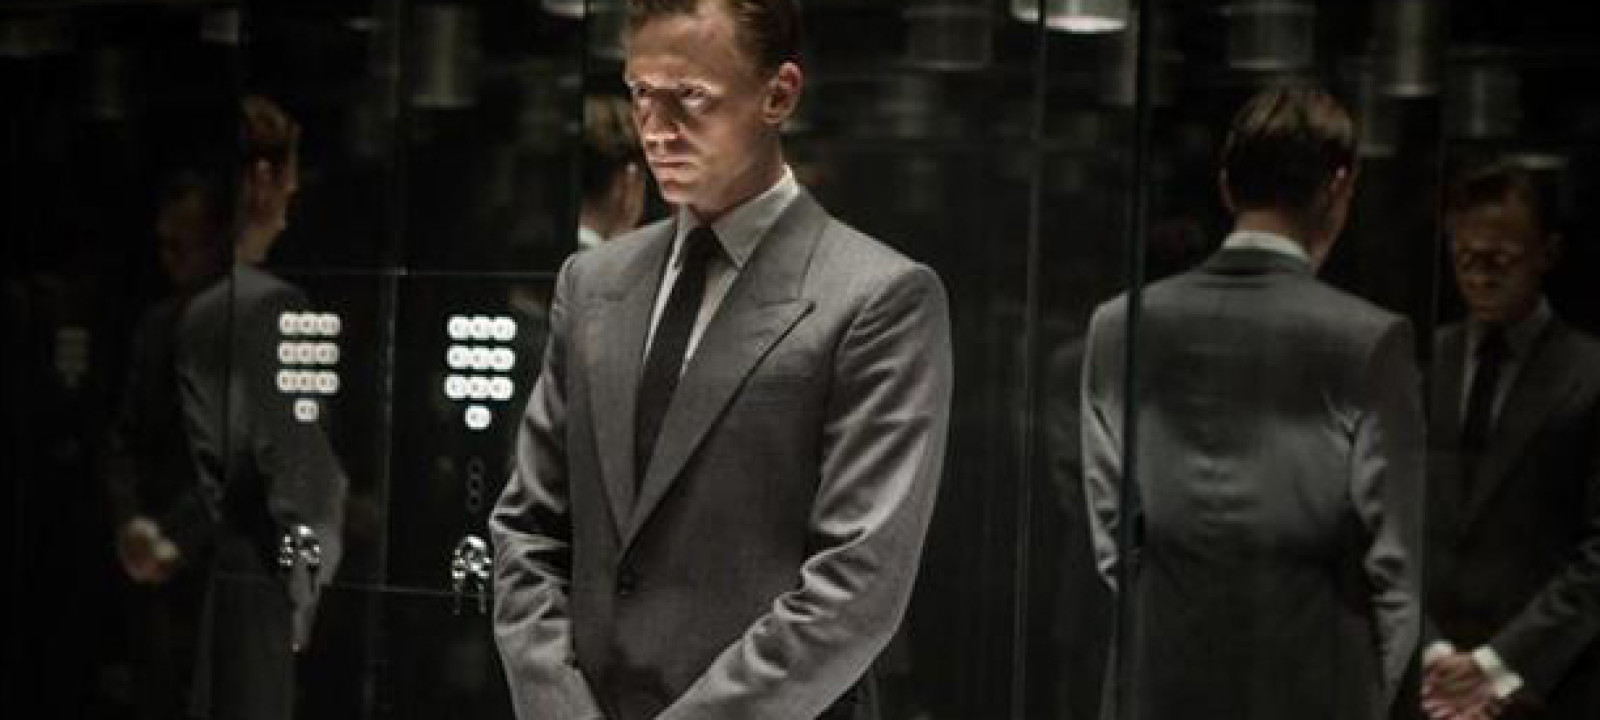 high rise coming out